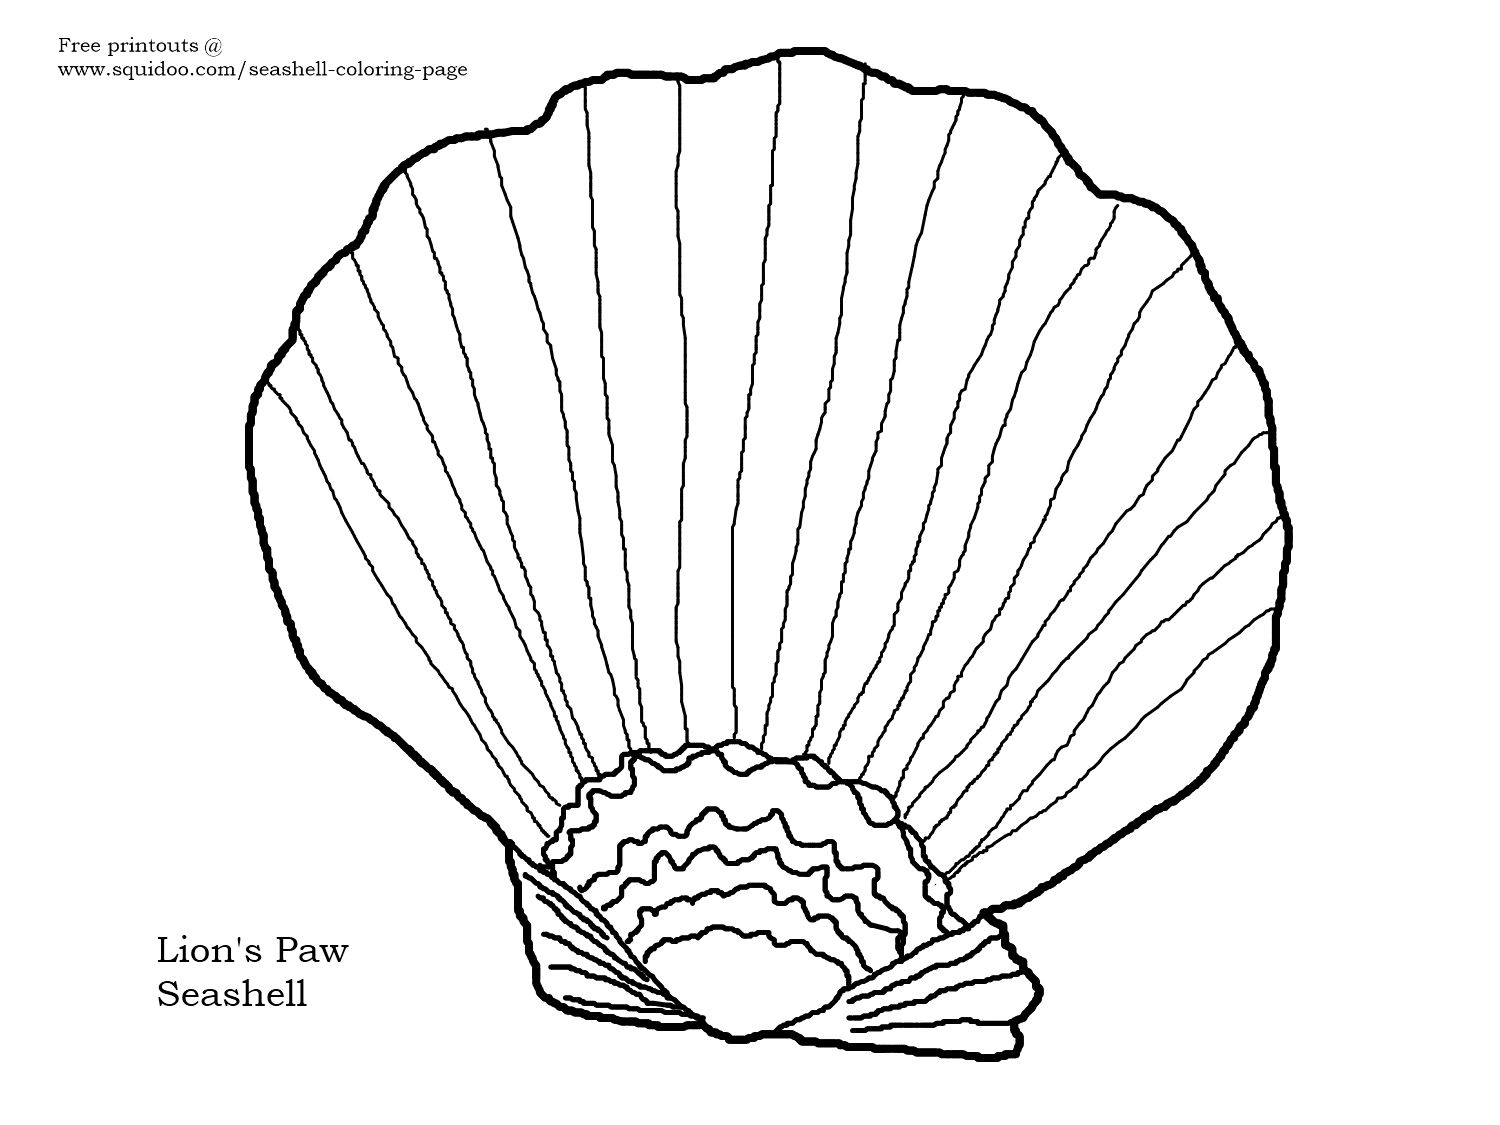 Seashell Coloring Pages Sea Shell Coloring Pages Online Coloring Pages